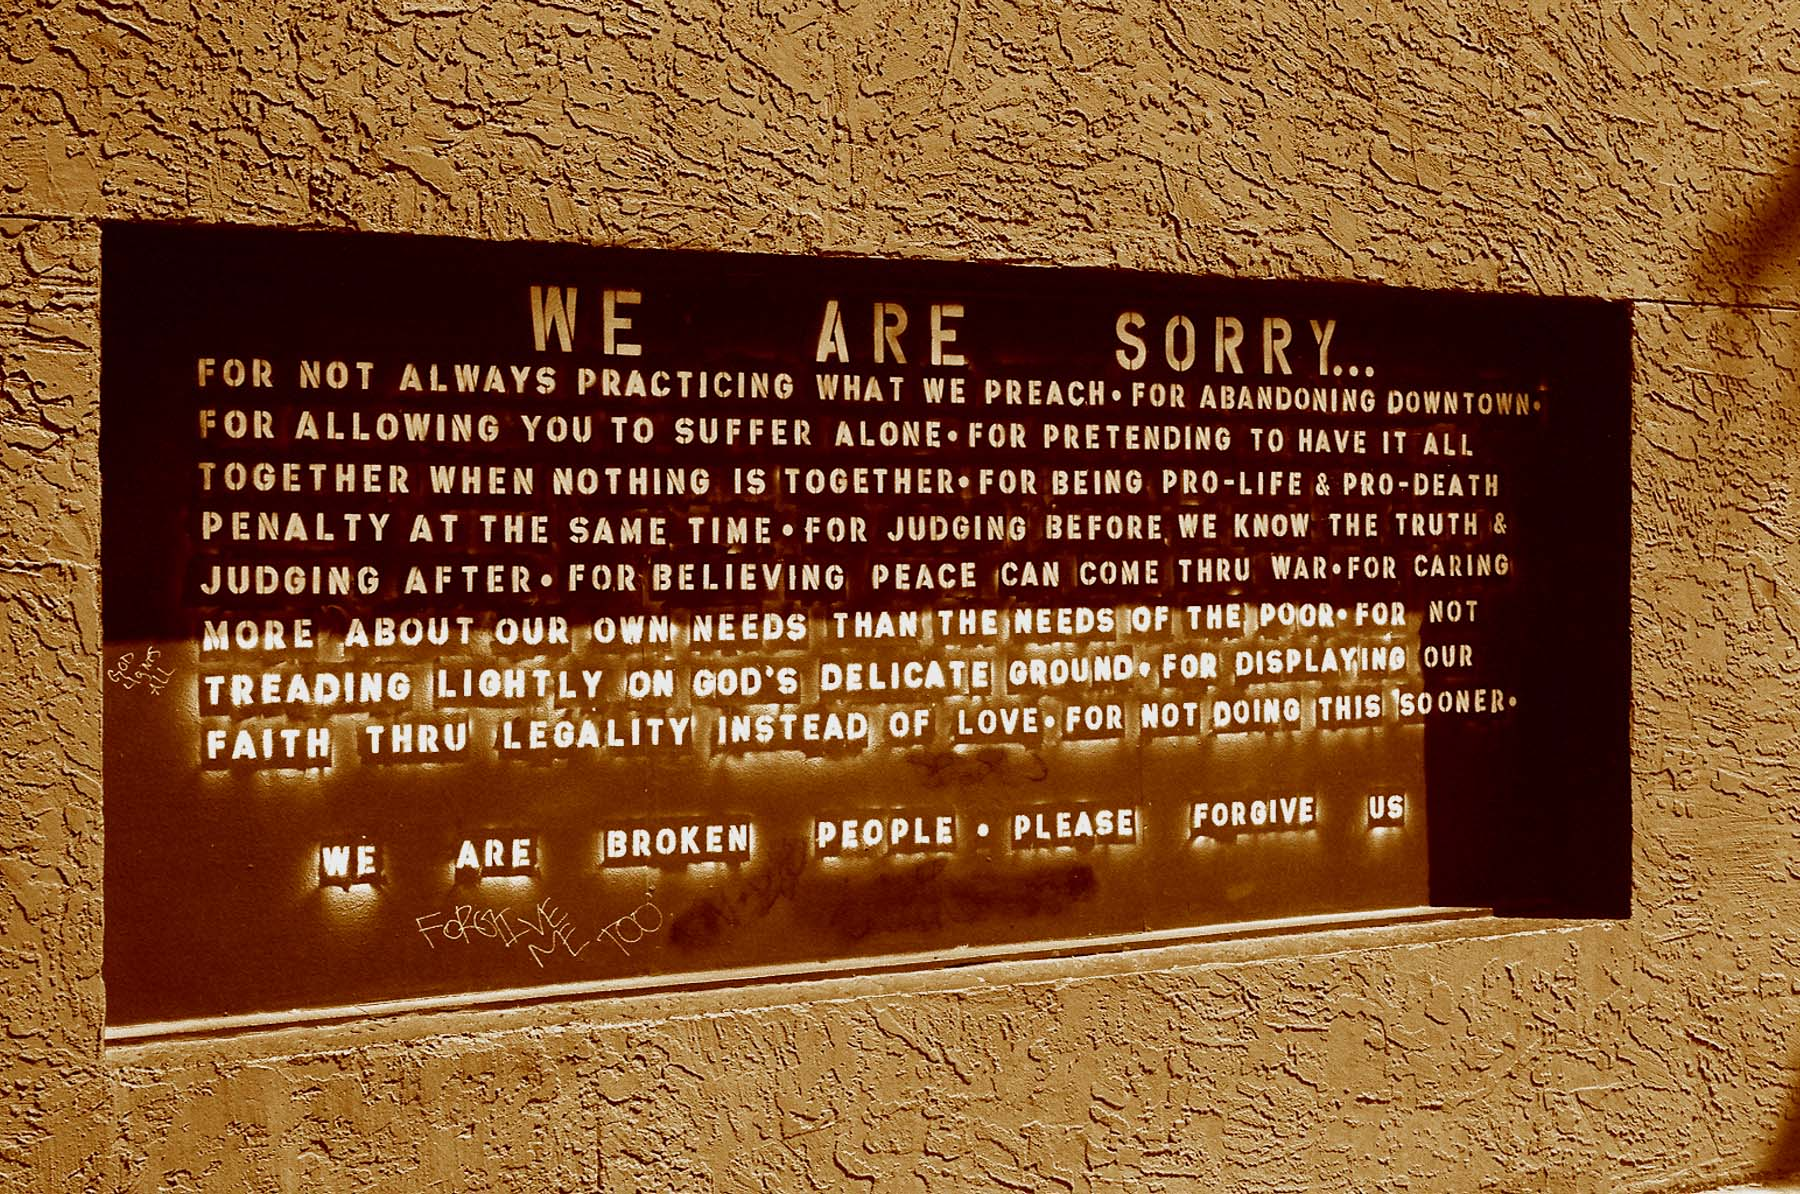 2007-phx-apology-wall-1